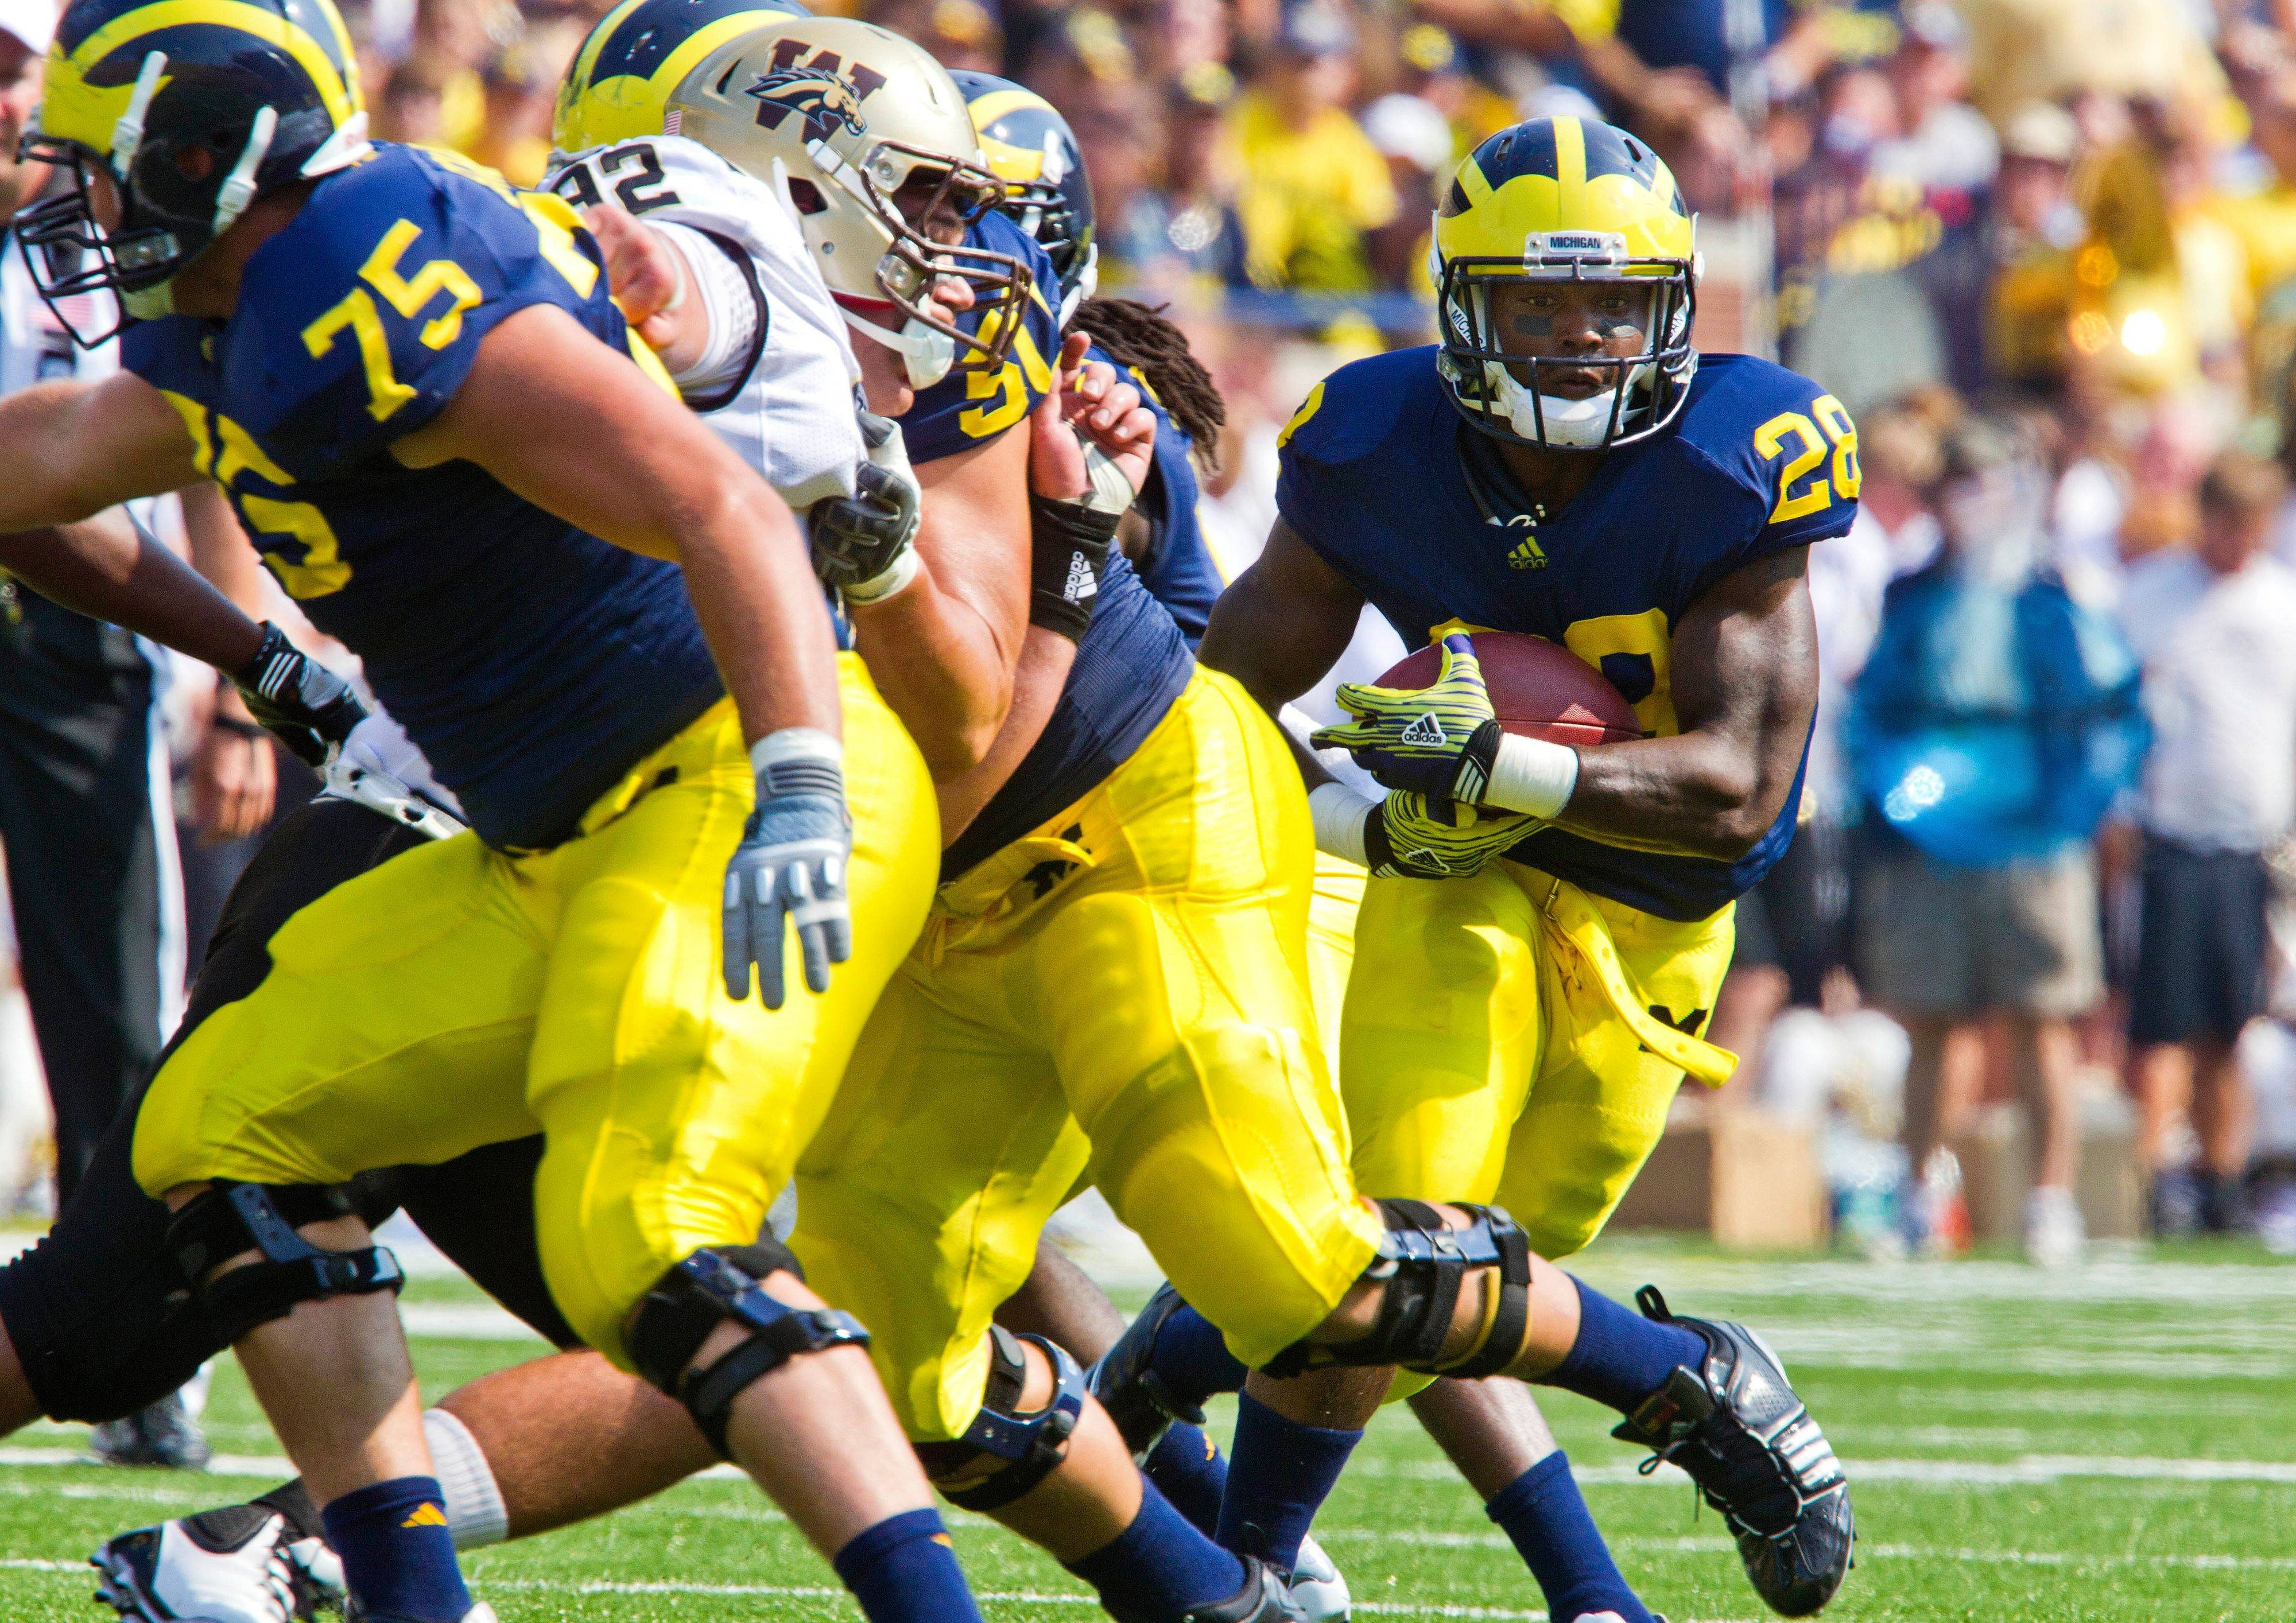 Michigan running back Fitzgerald Toussaint breaks away from the pocket after taking a handoff in the first quarter Saturday.